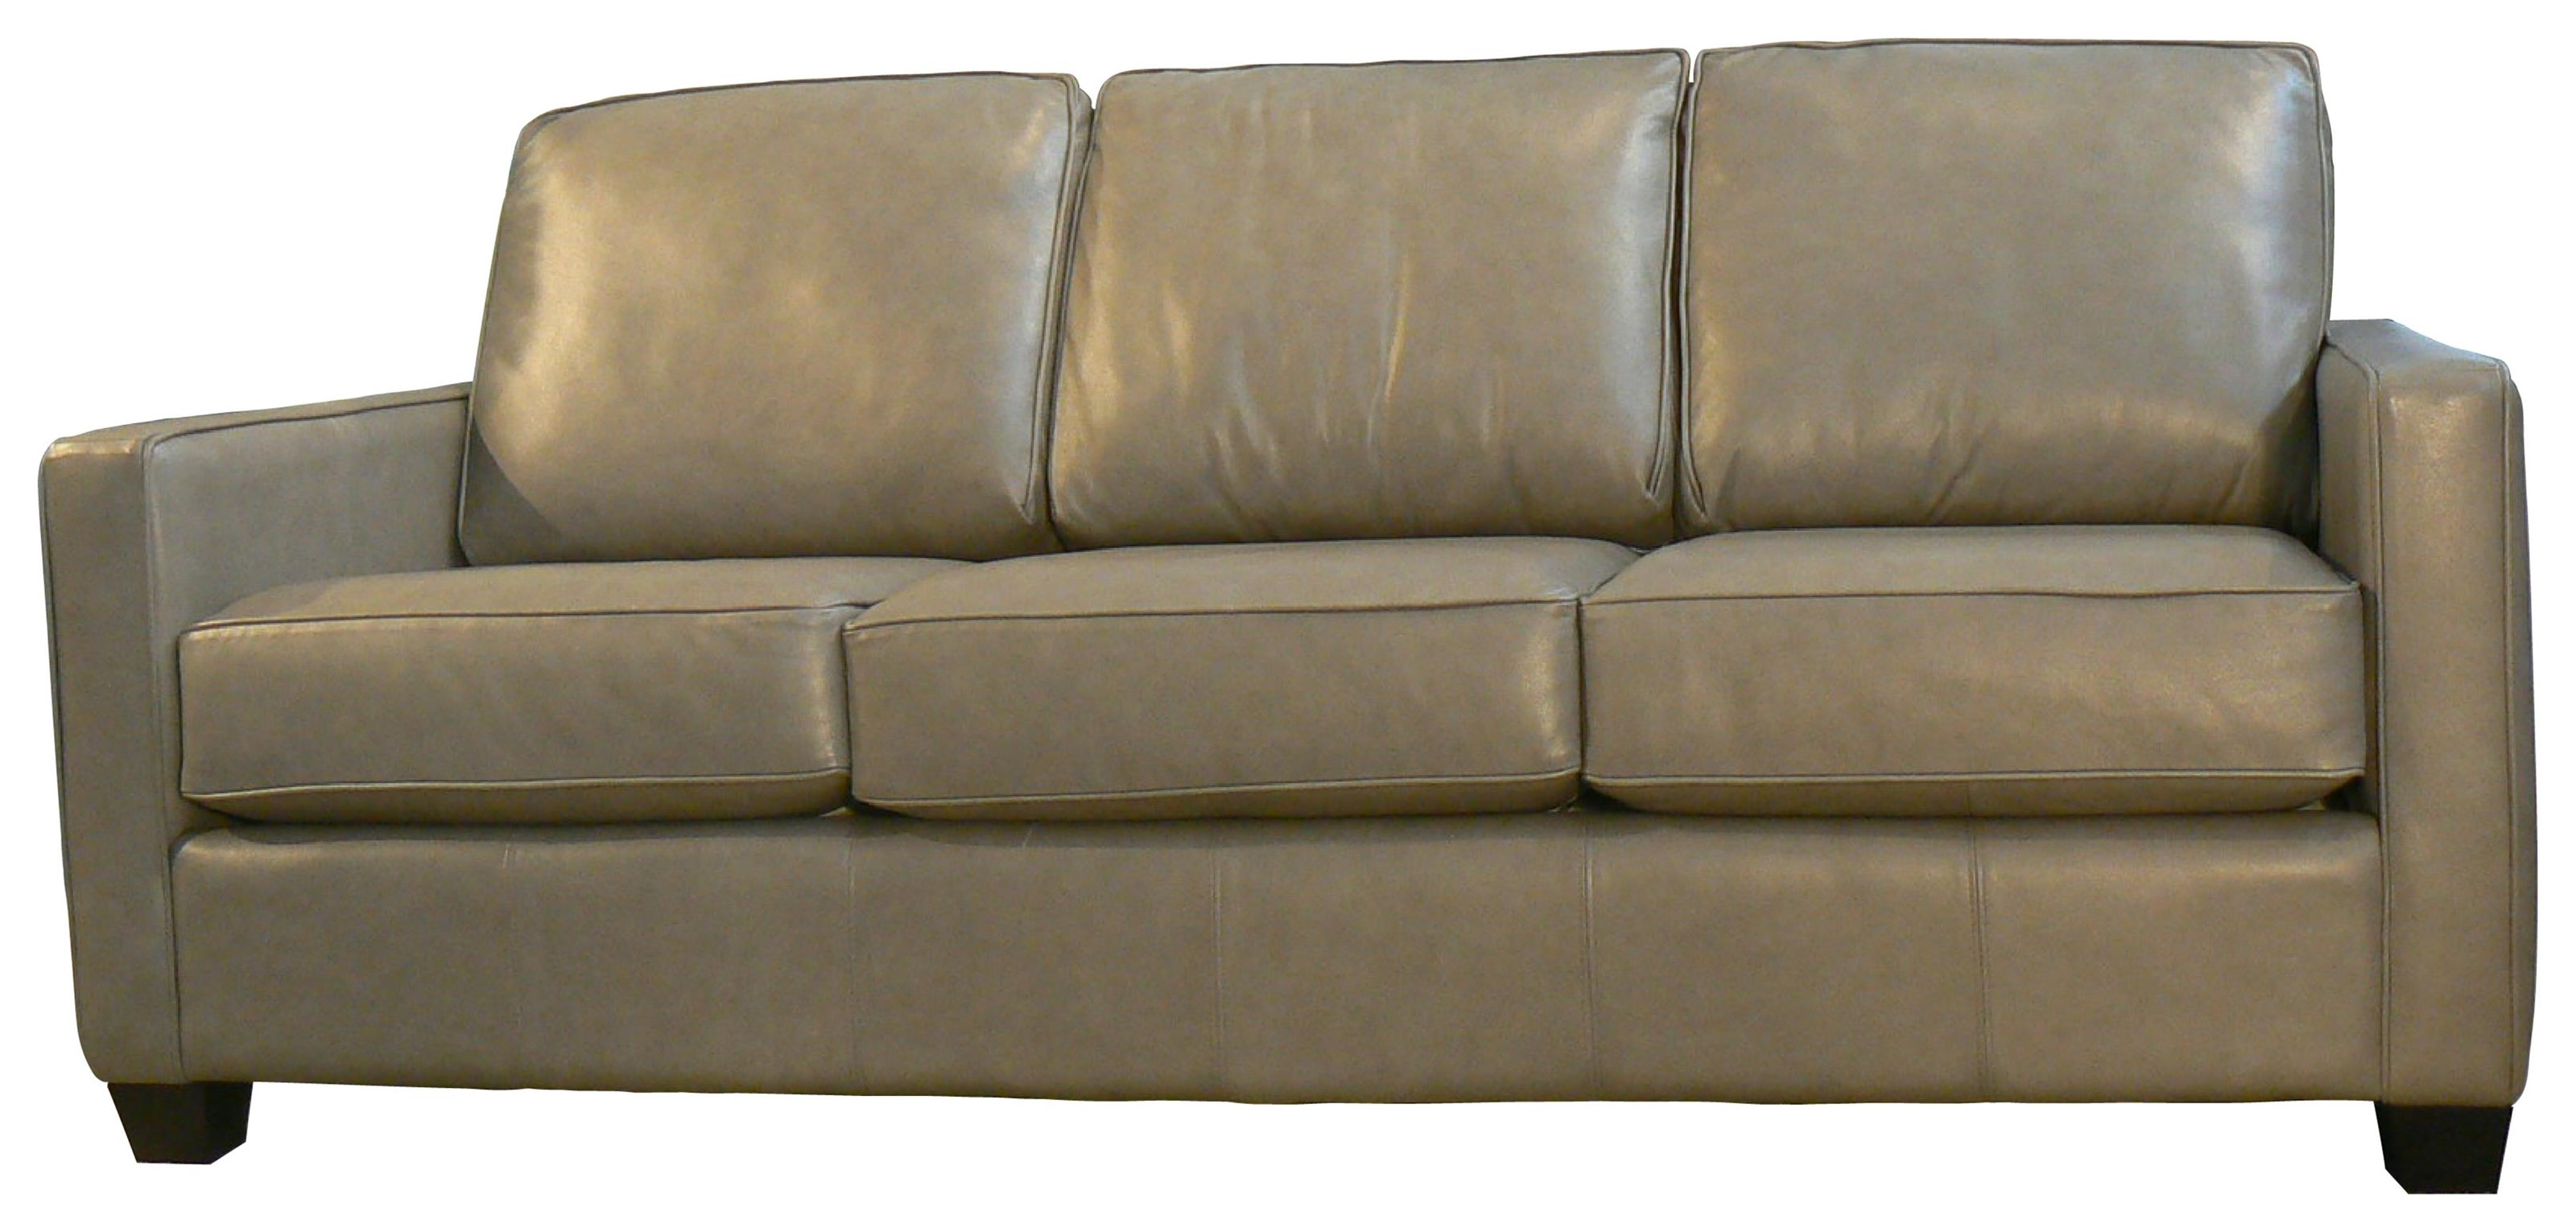 Lara Leather Sofa by Taelor Designs at Bennett's Furniture and Mattresses